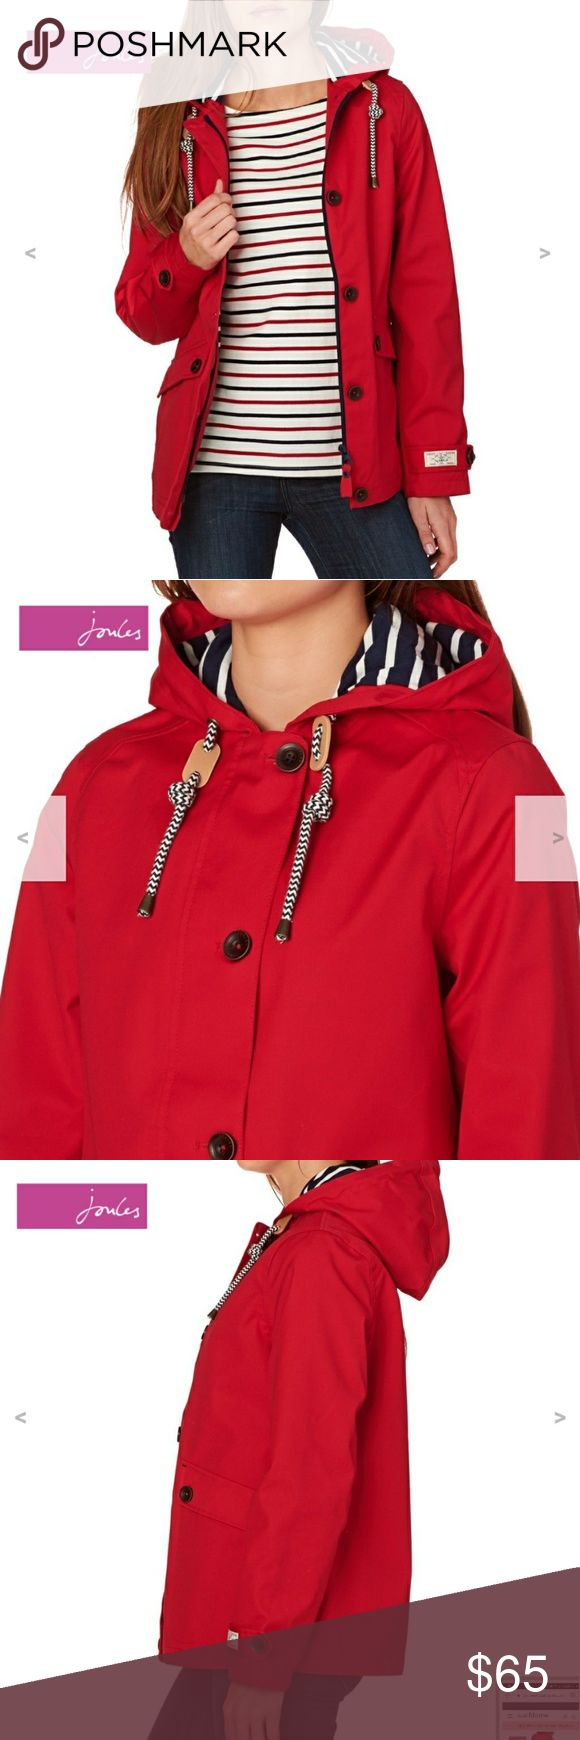 Joules Red Raincoat M/8 Worn once, like new Joules Jackets & Coats